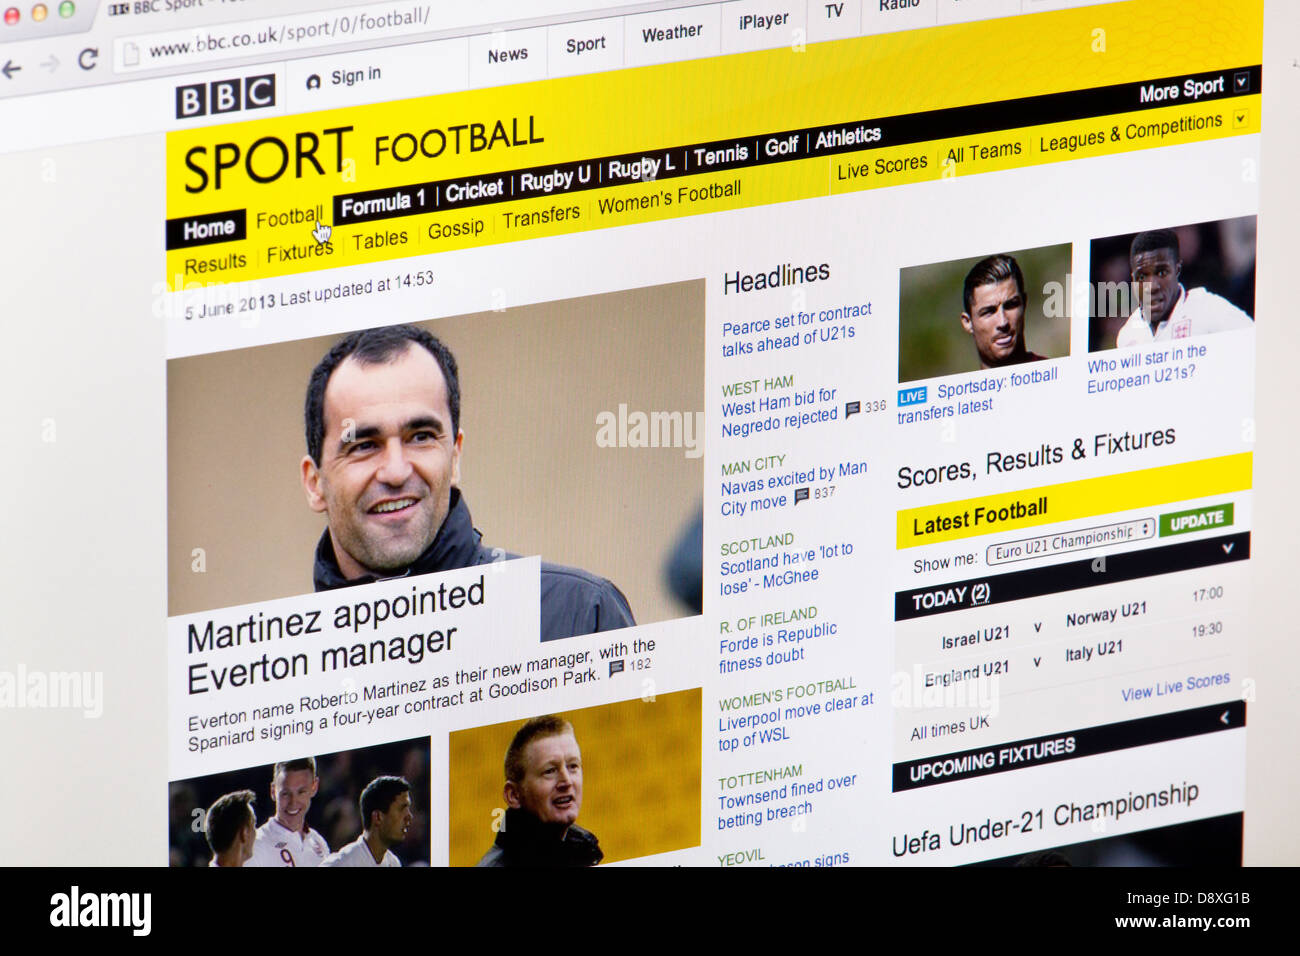 BBC Sport Football Homepage Website or web page on a laptop screen or computer monitor - Stock Image